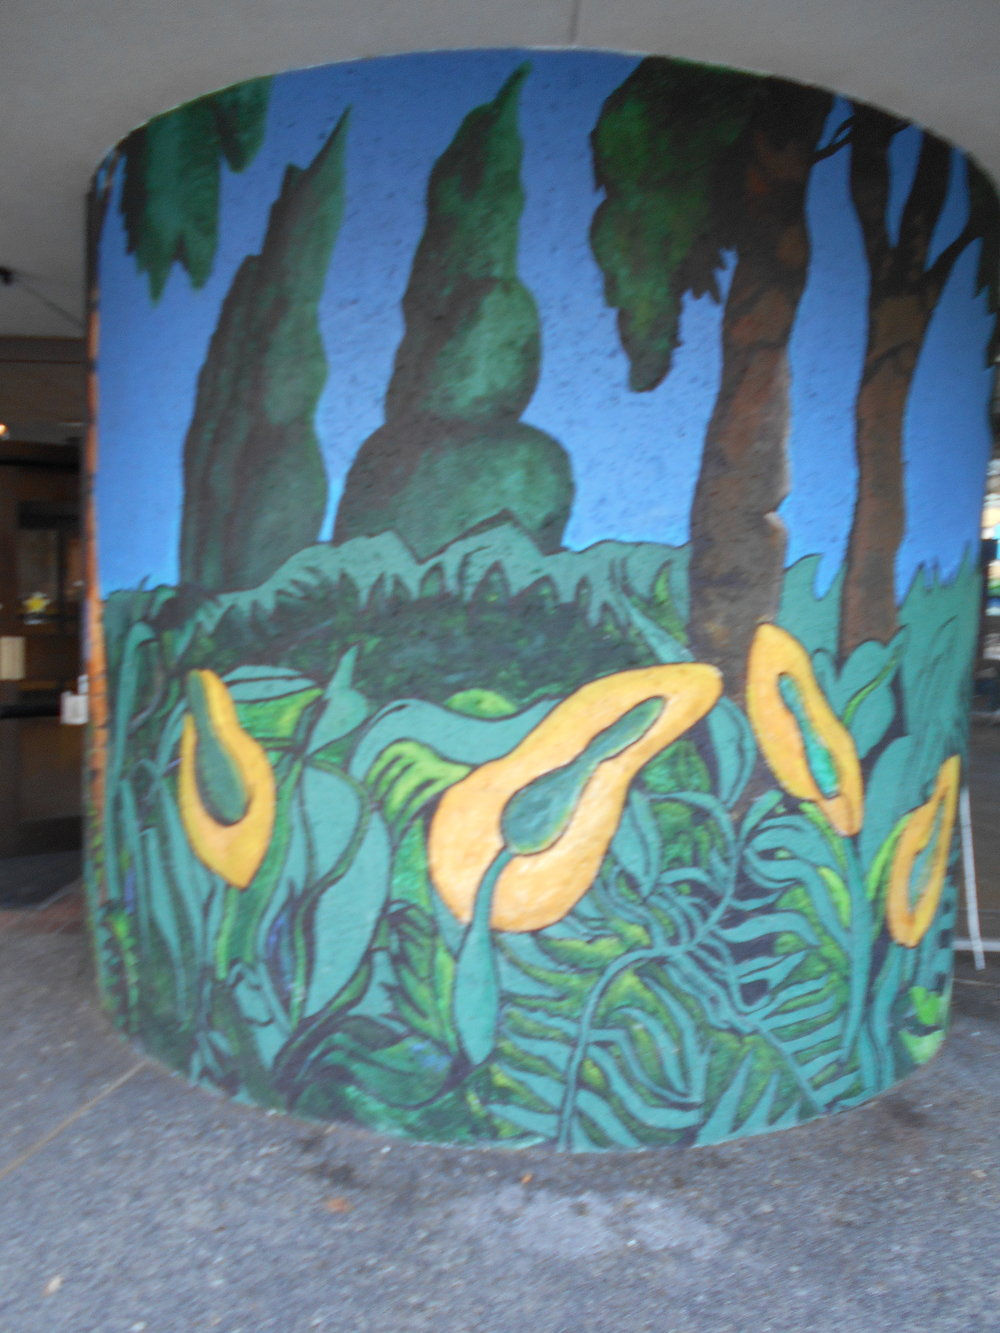 Tiko Kerr creation at the West End Community Centre.